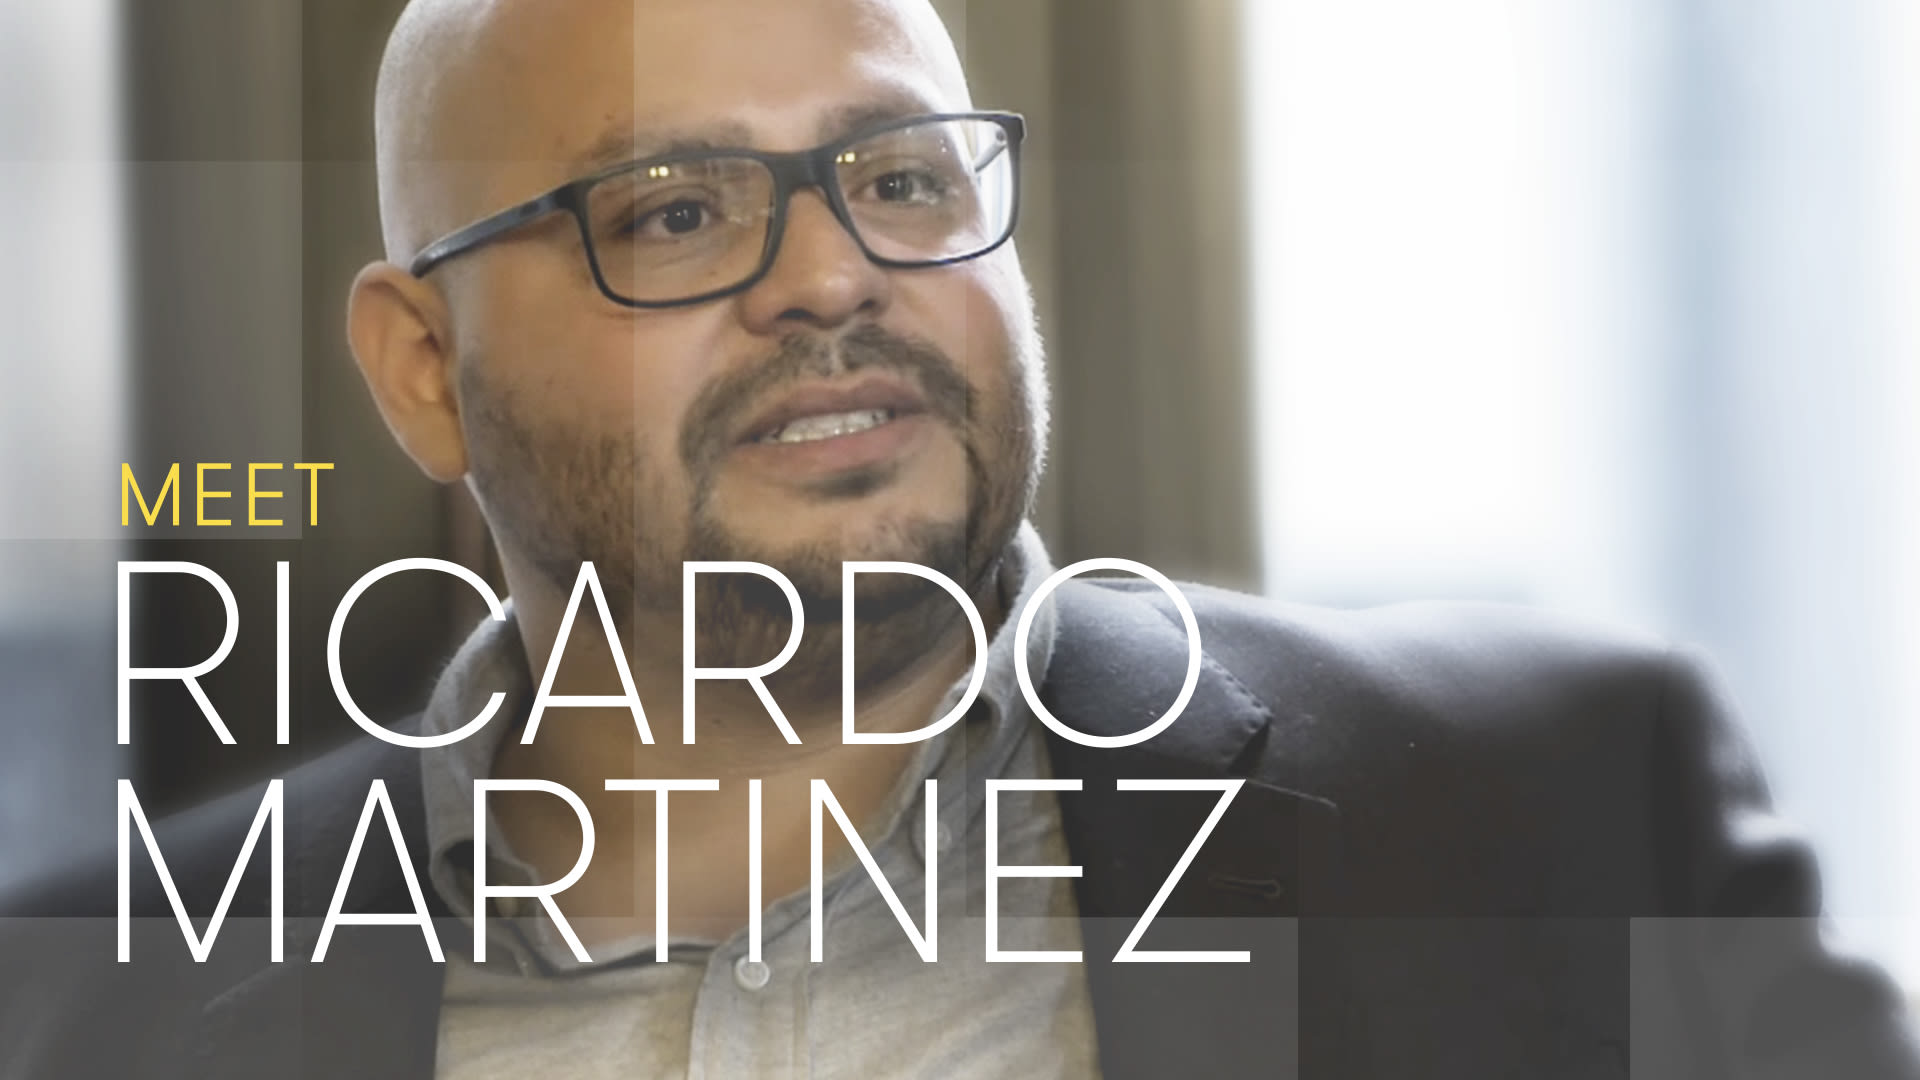 The Partner contestant Ricardo Martinez